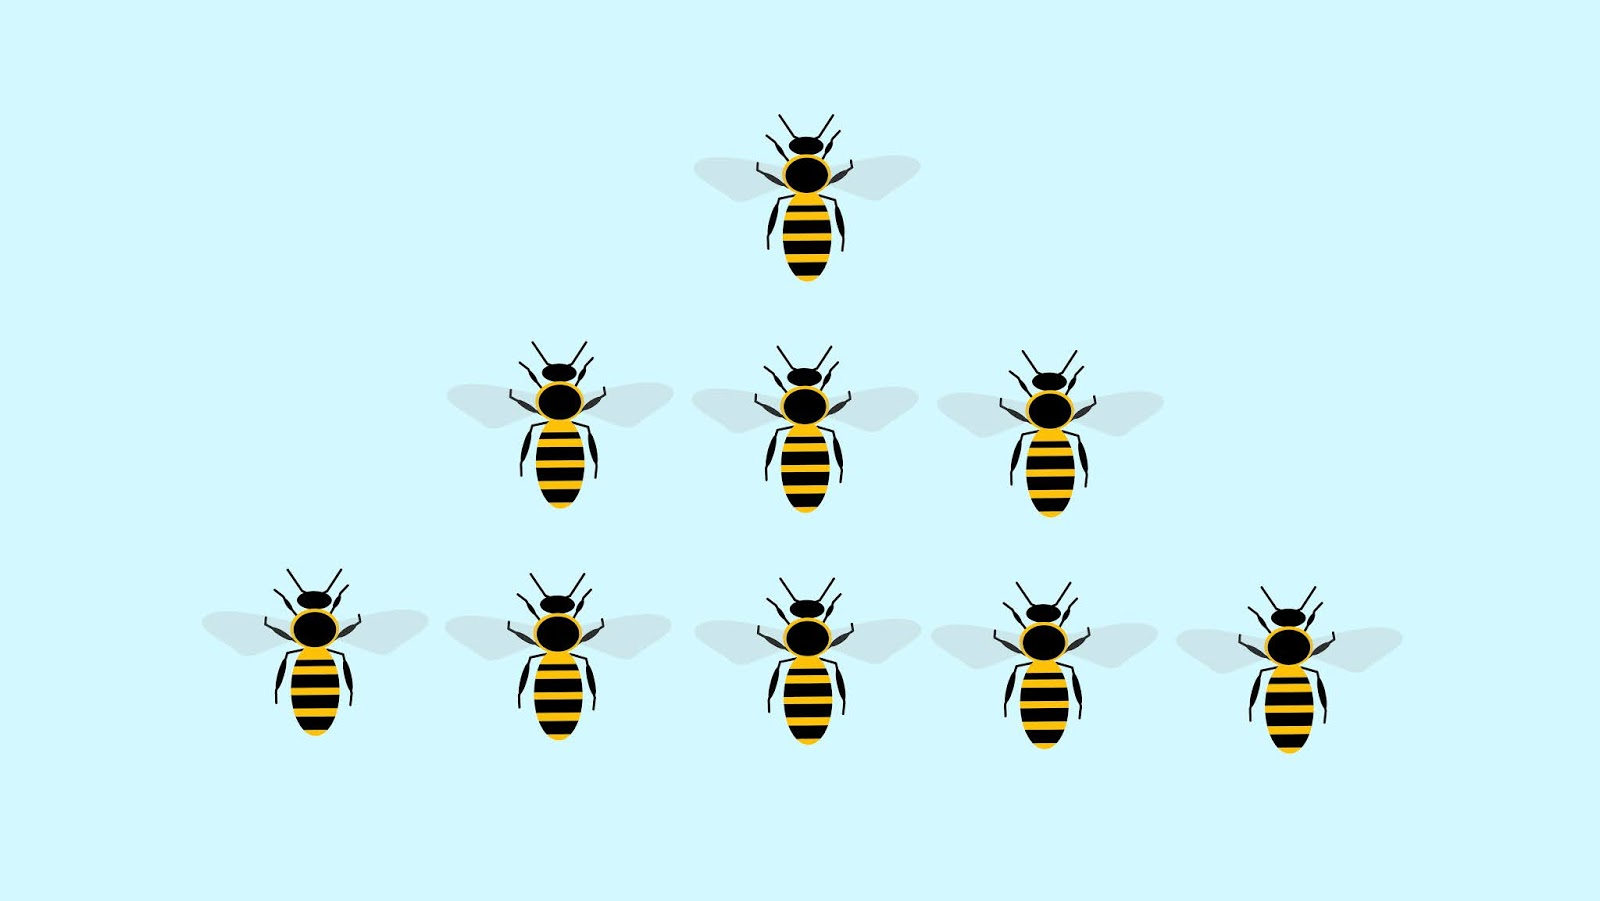 Illustration of organized bee's group